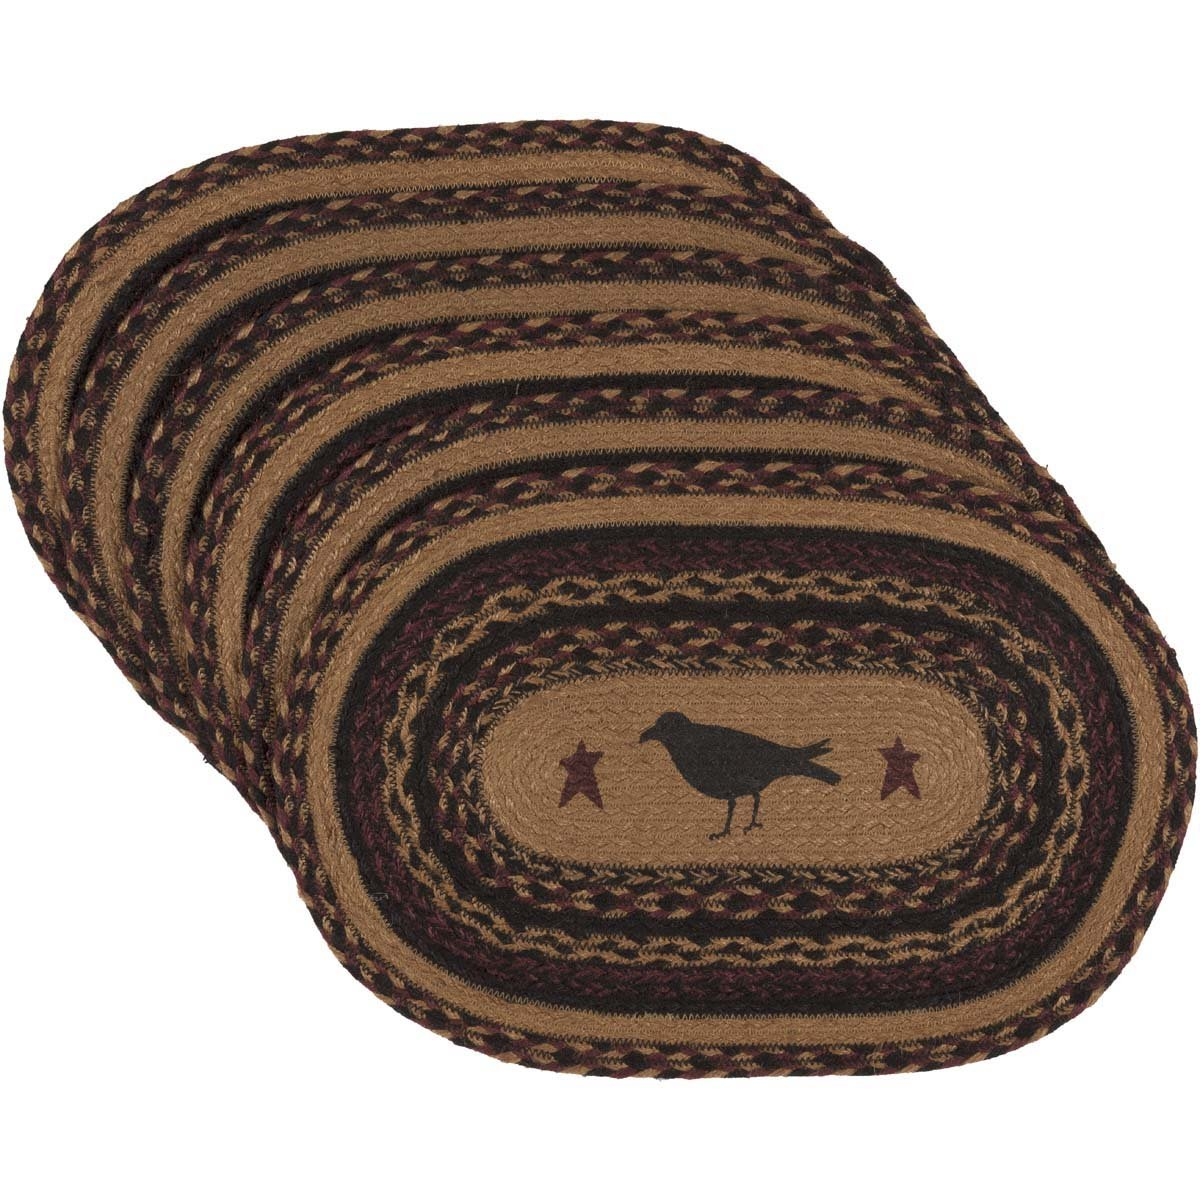 VHC Brands Heritage Farms Crow Oval Jute Placemat Set of 6   B073RWMNCL